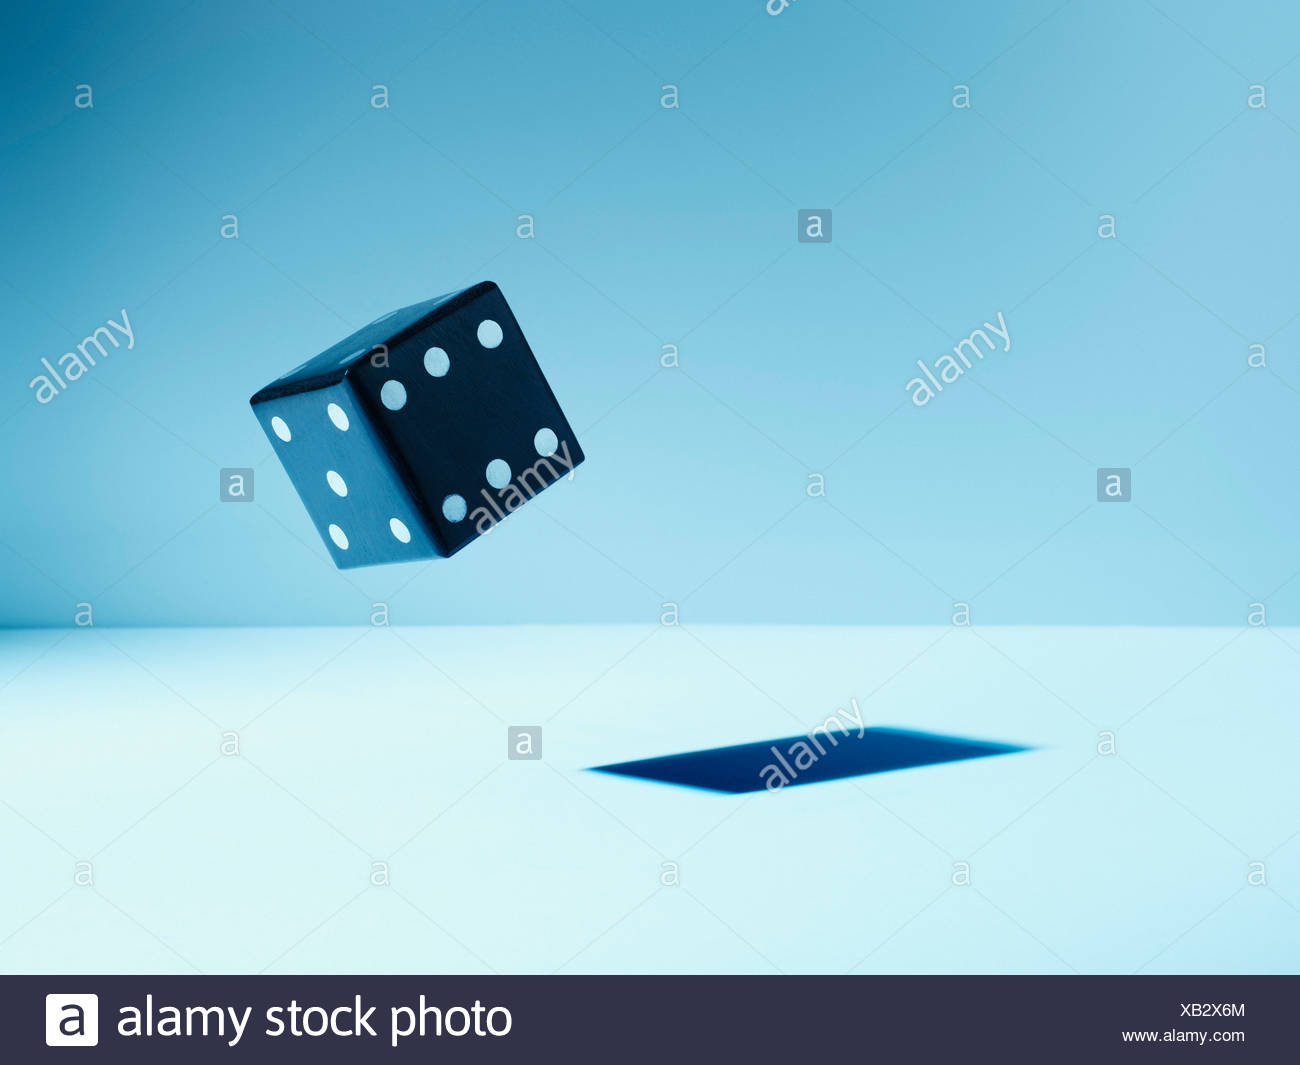 Black die in mid-air Stock Photo